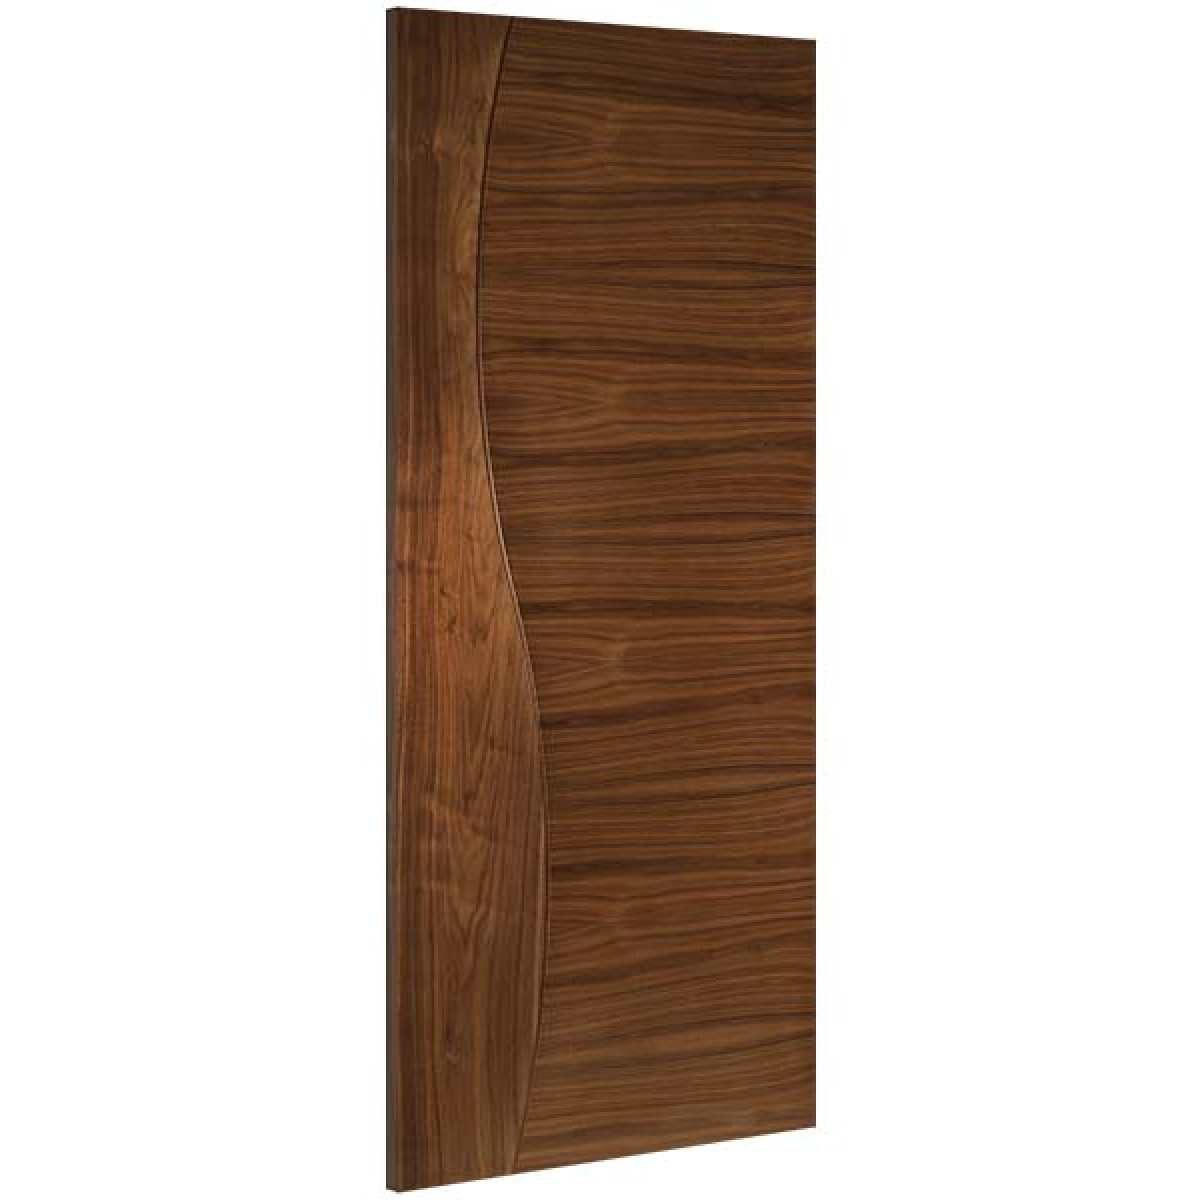 cadiz walnut angled websters Image by Websters Timber